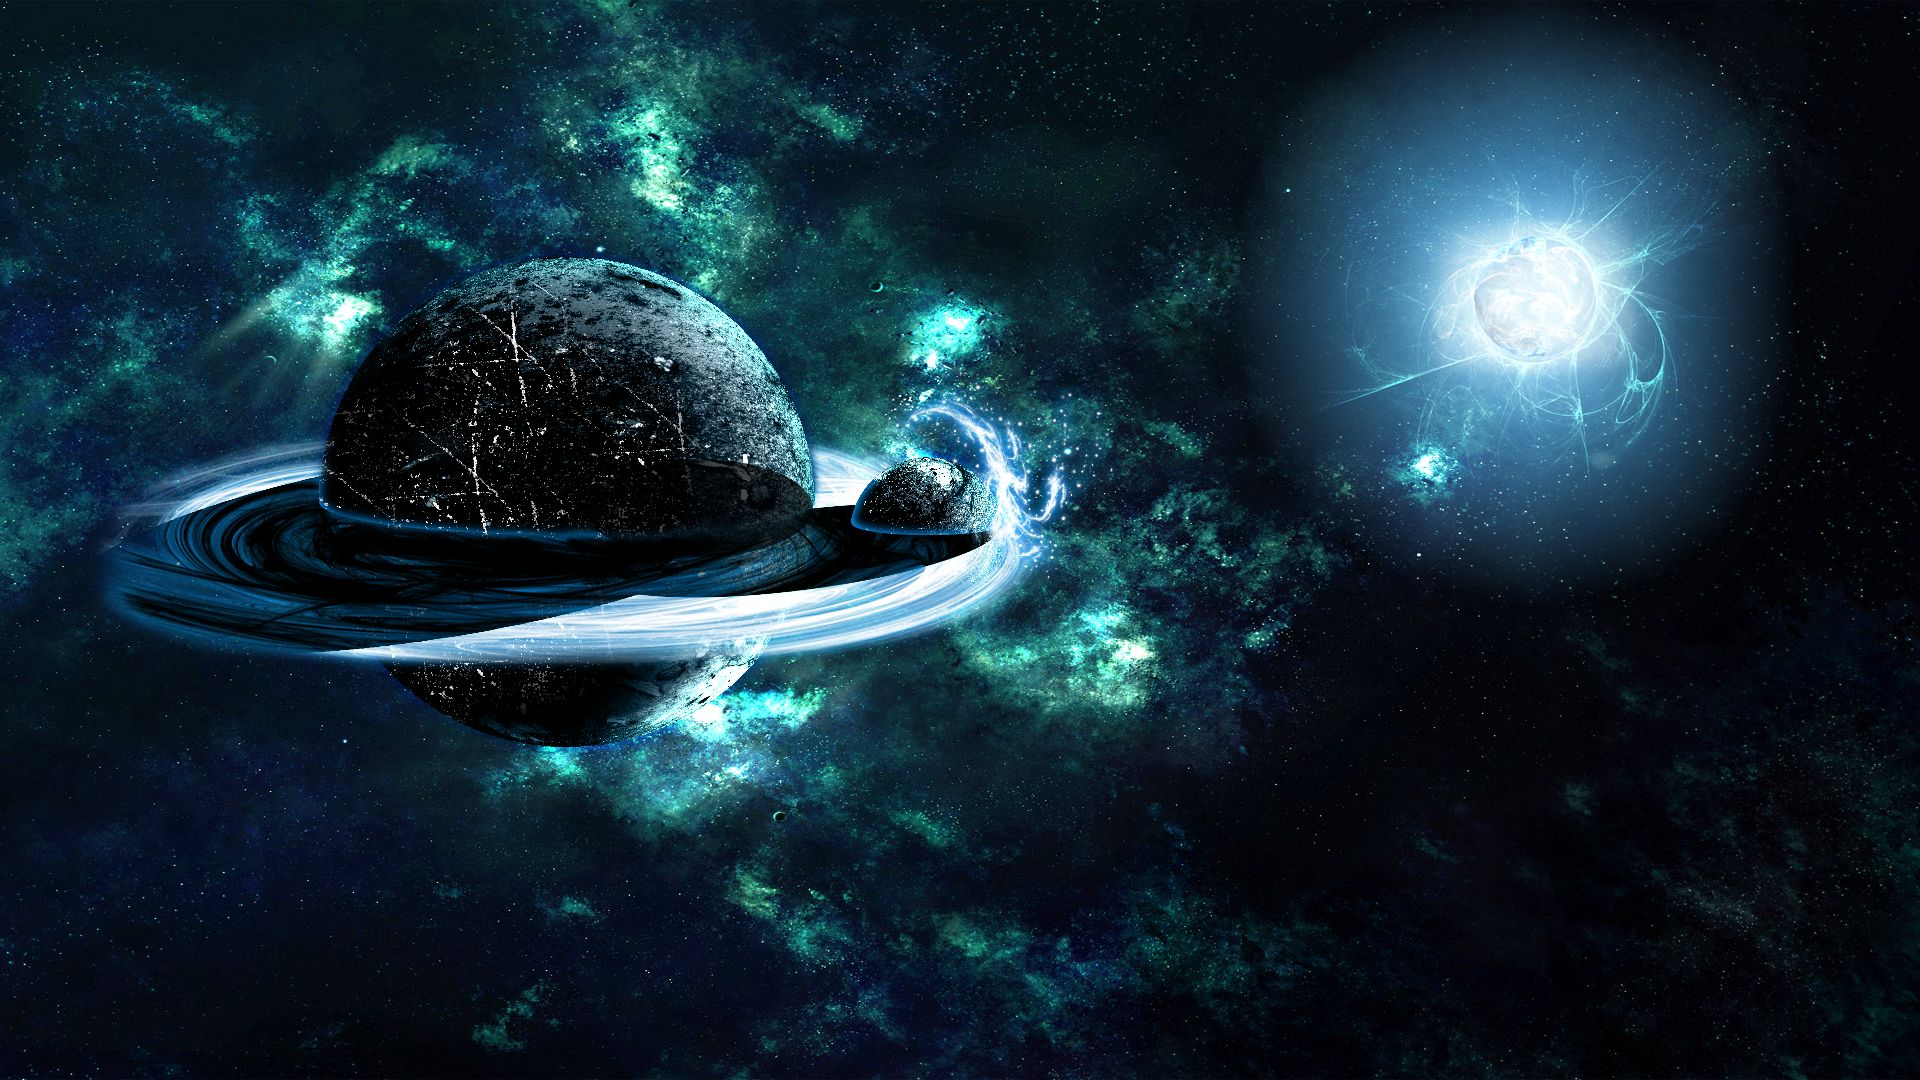 Download largest collection of hd space wallpapers for free for Immagini spazio hd